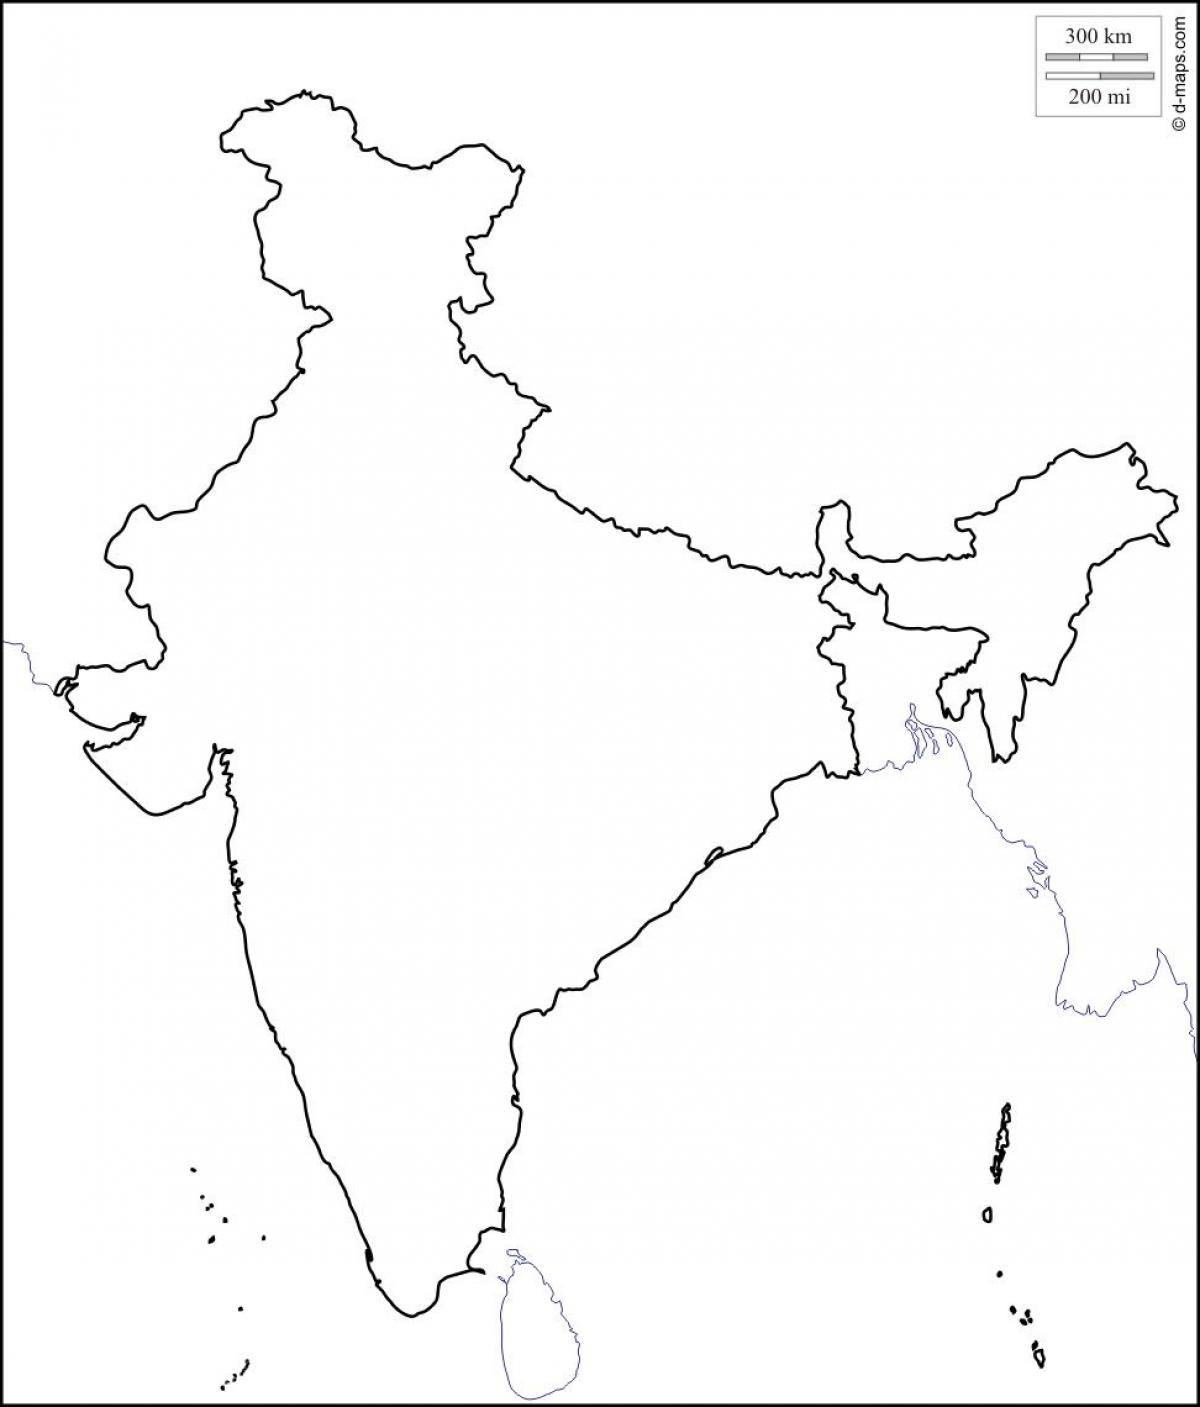 Maharashtra Blank Map India Printable Blank Maps Outline Maps - Blank map of asia